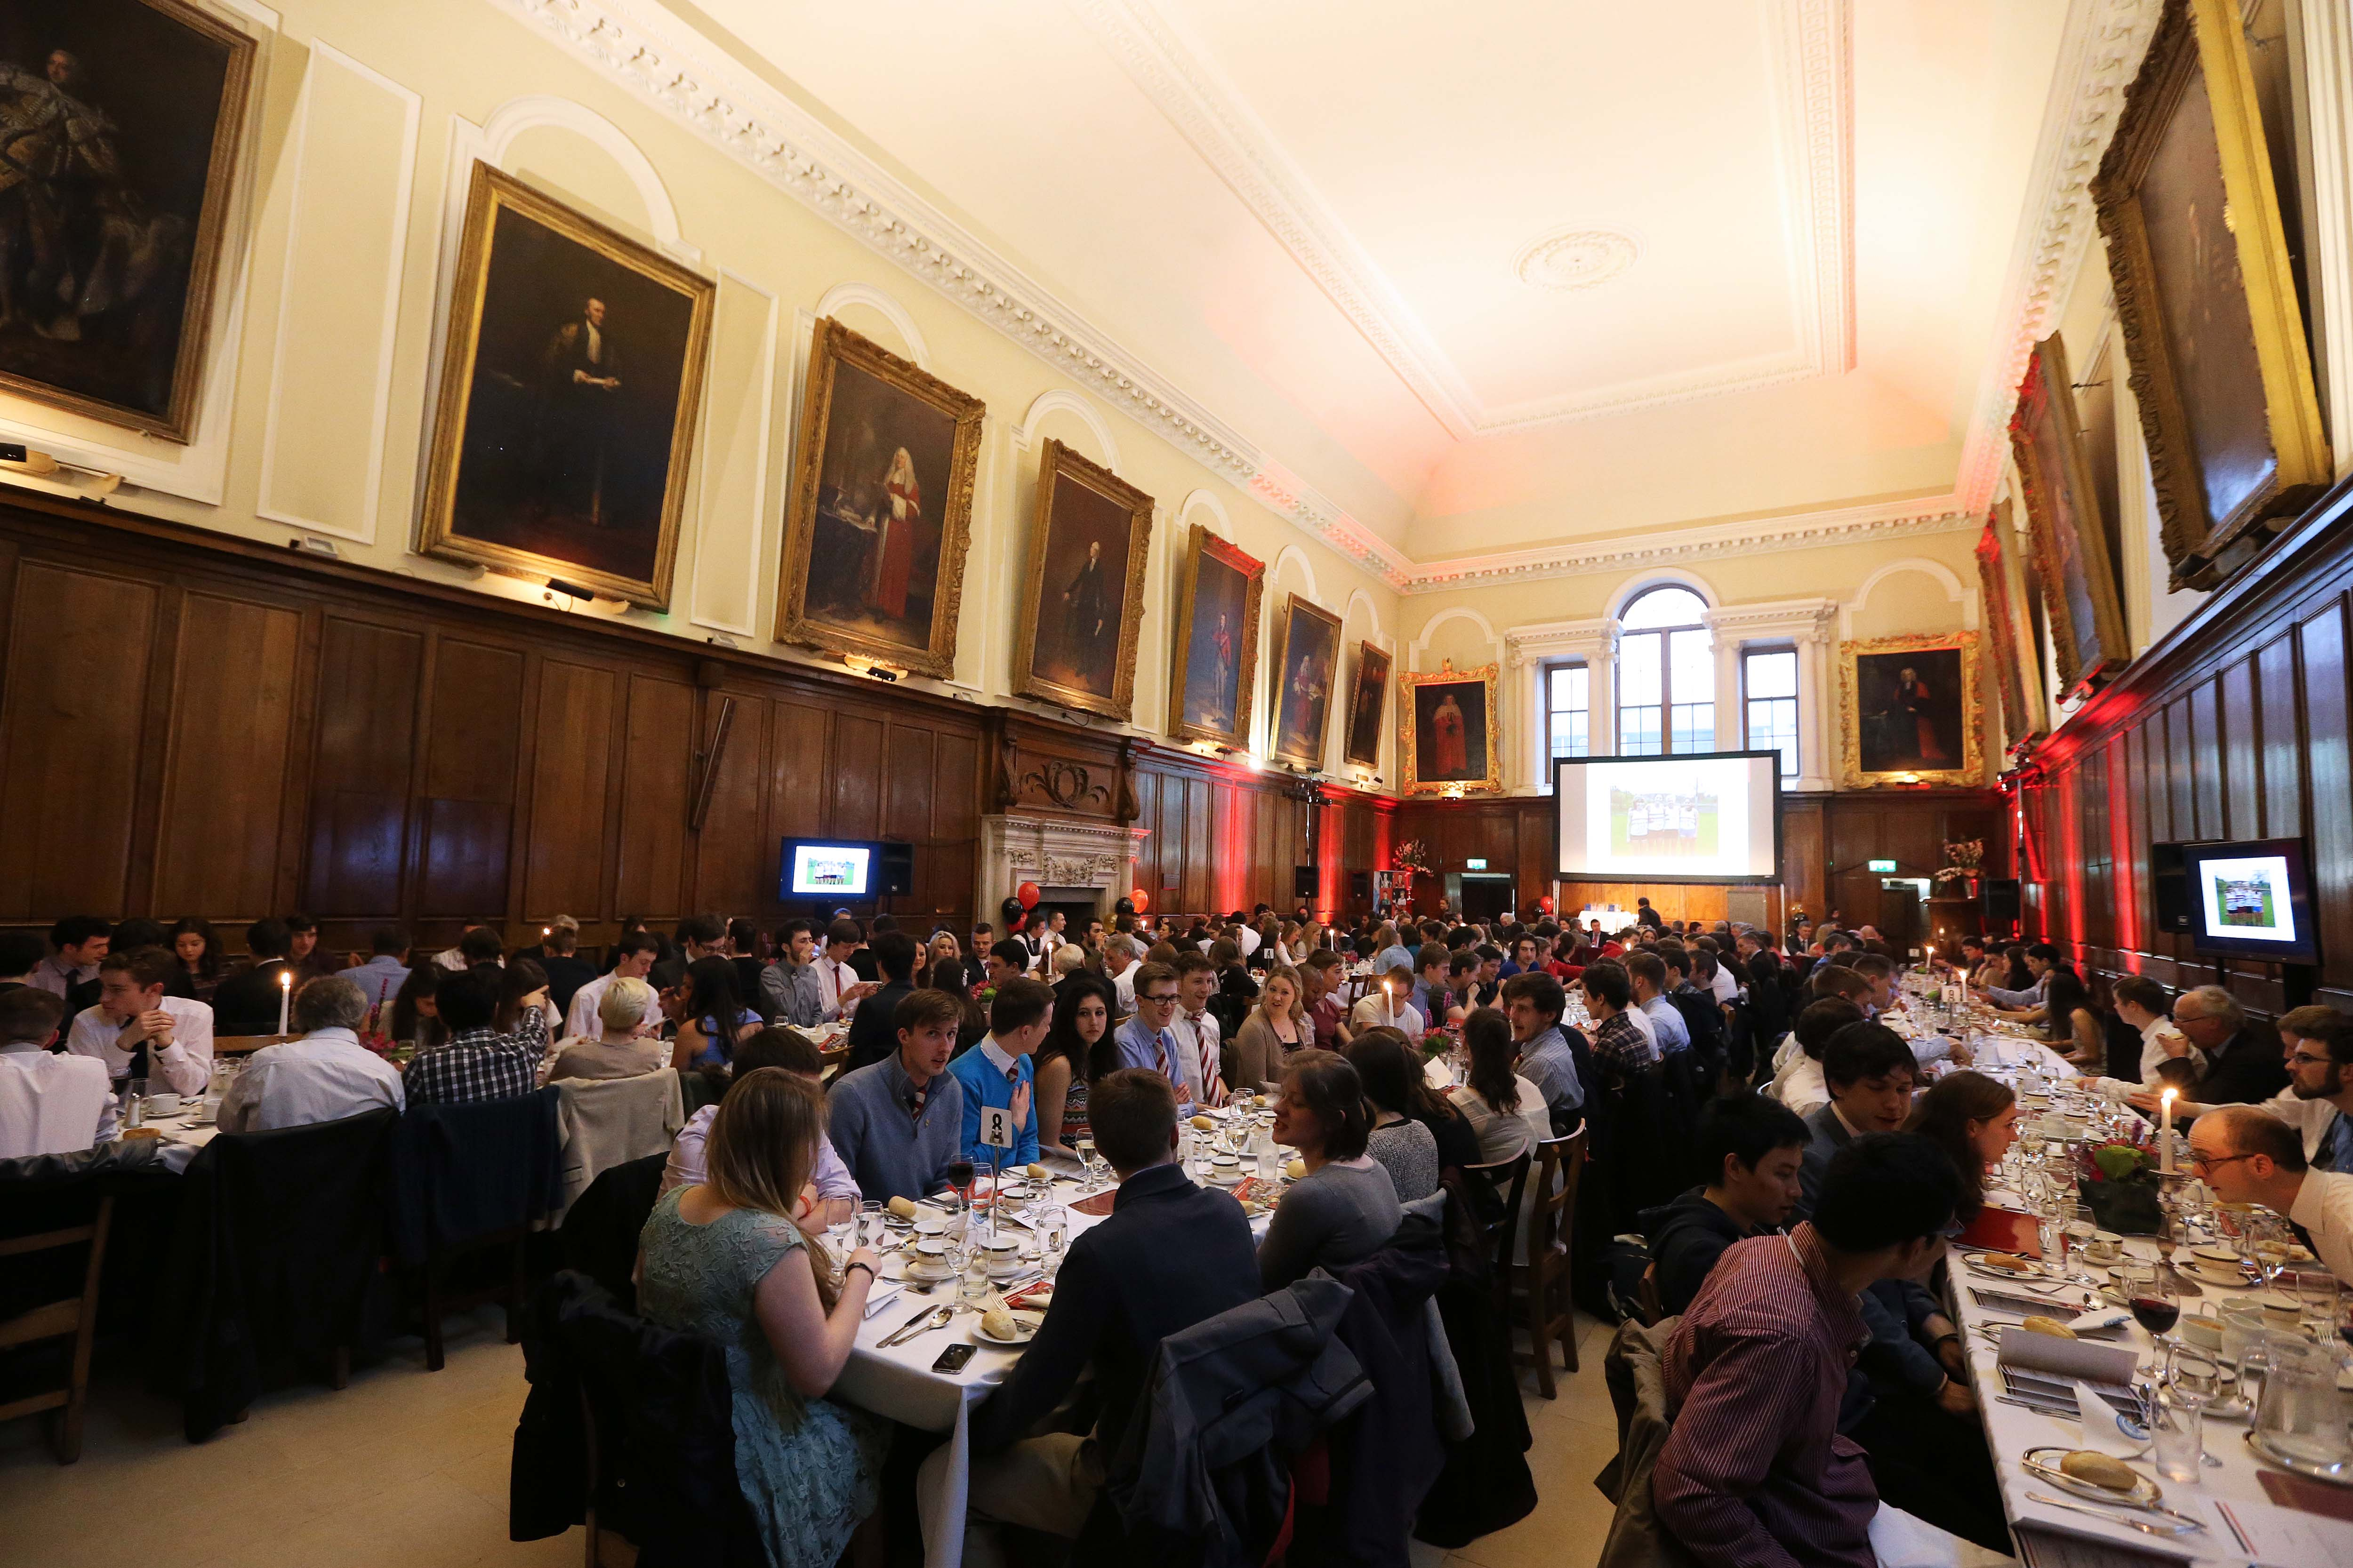 Trinity sport awards commons trinity sport trinity college dublin the annual trinity sport awards and commons will take place on tuesday 6th april in the dining hall trinity college we look forward to welcoming all dzzzfo